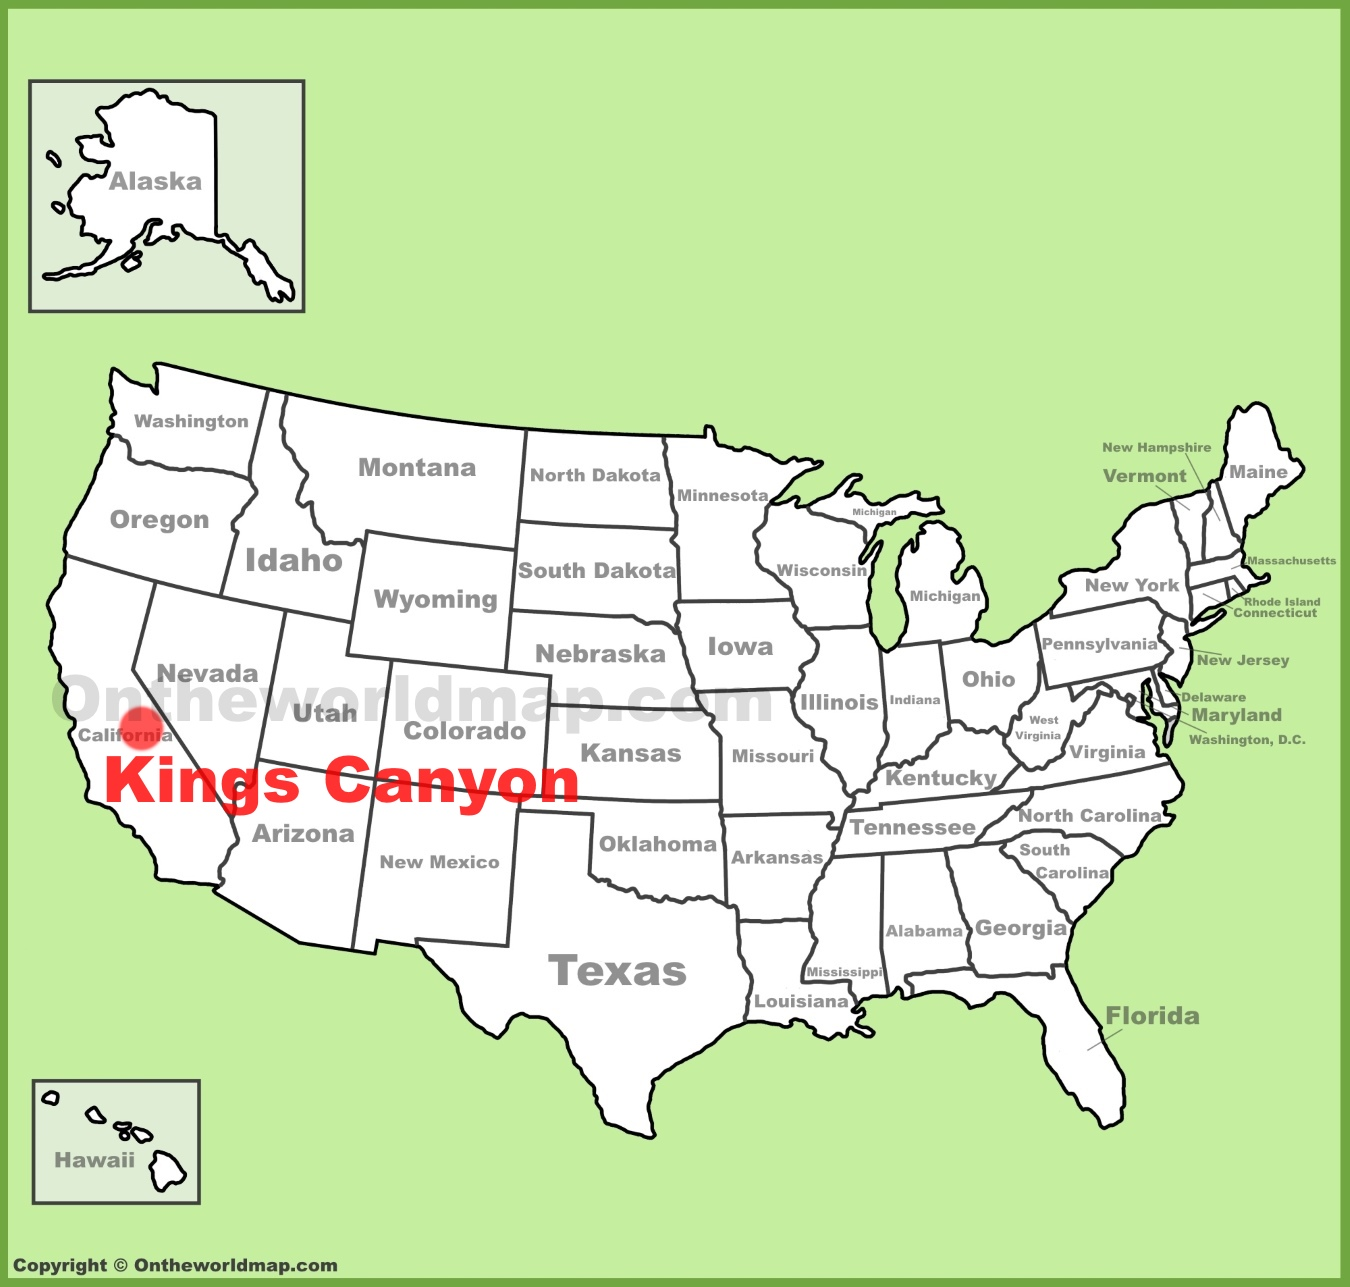 Kings Canyon National Park location on the US Map